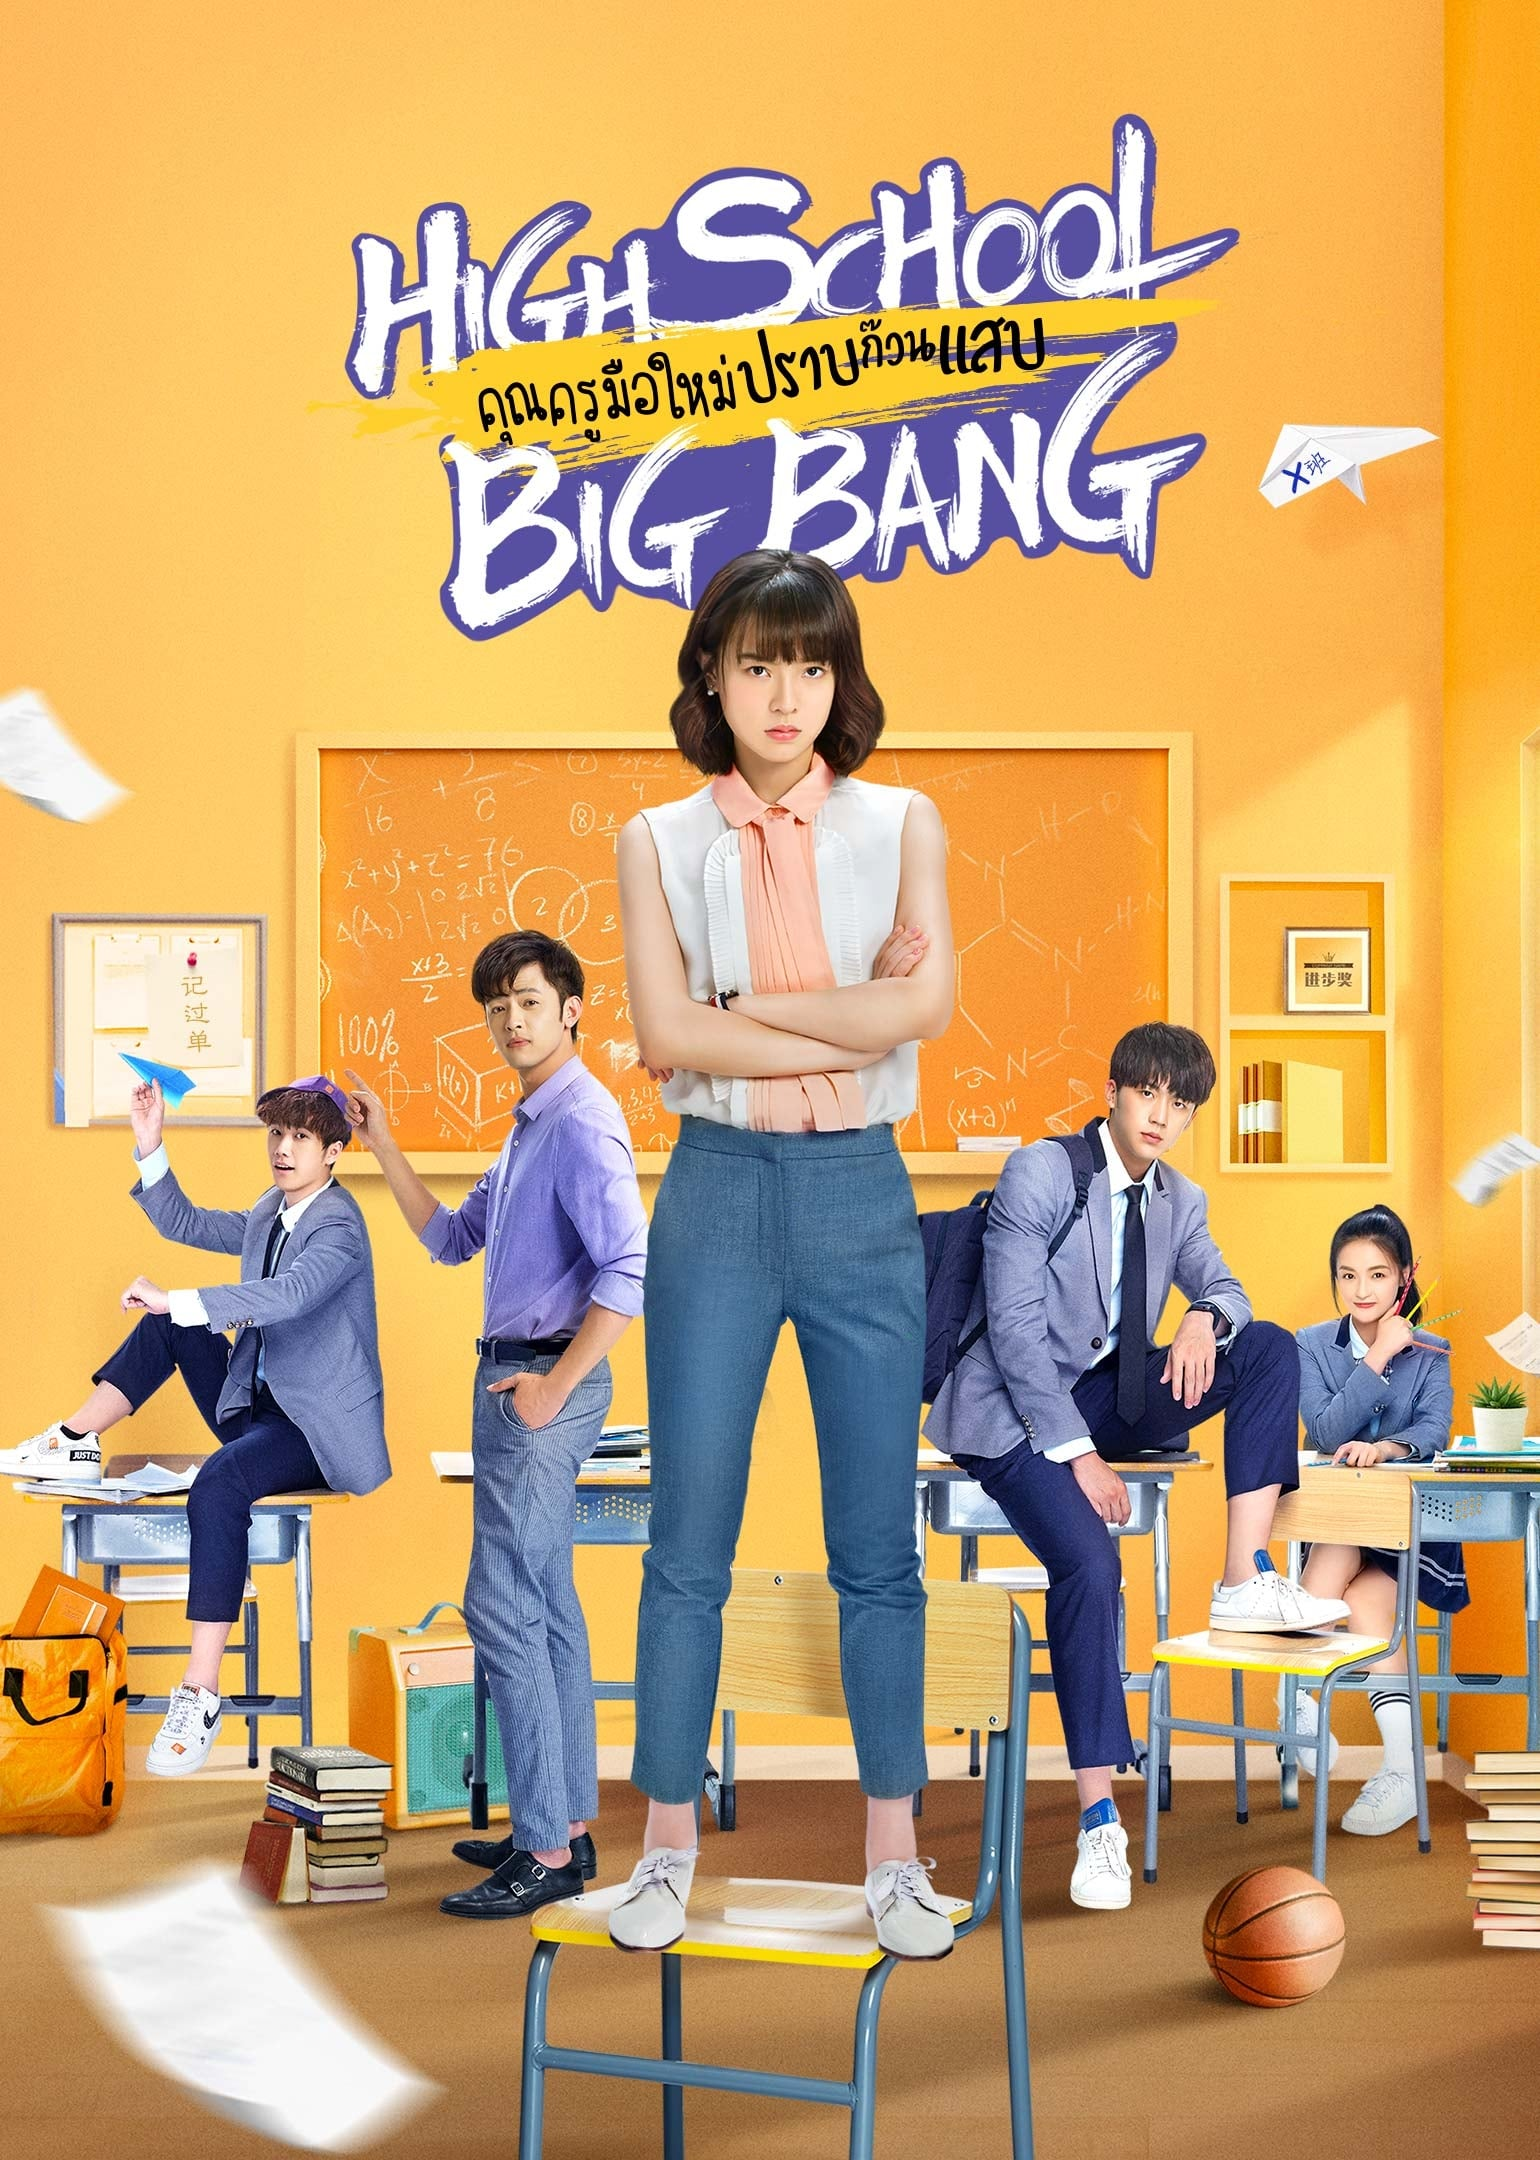 High School Big Bang (2020)